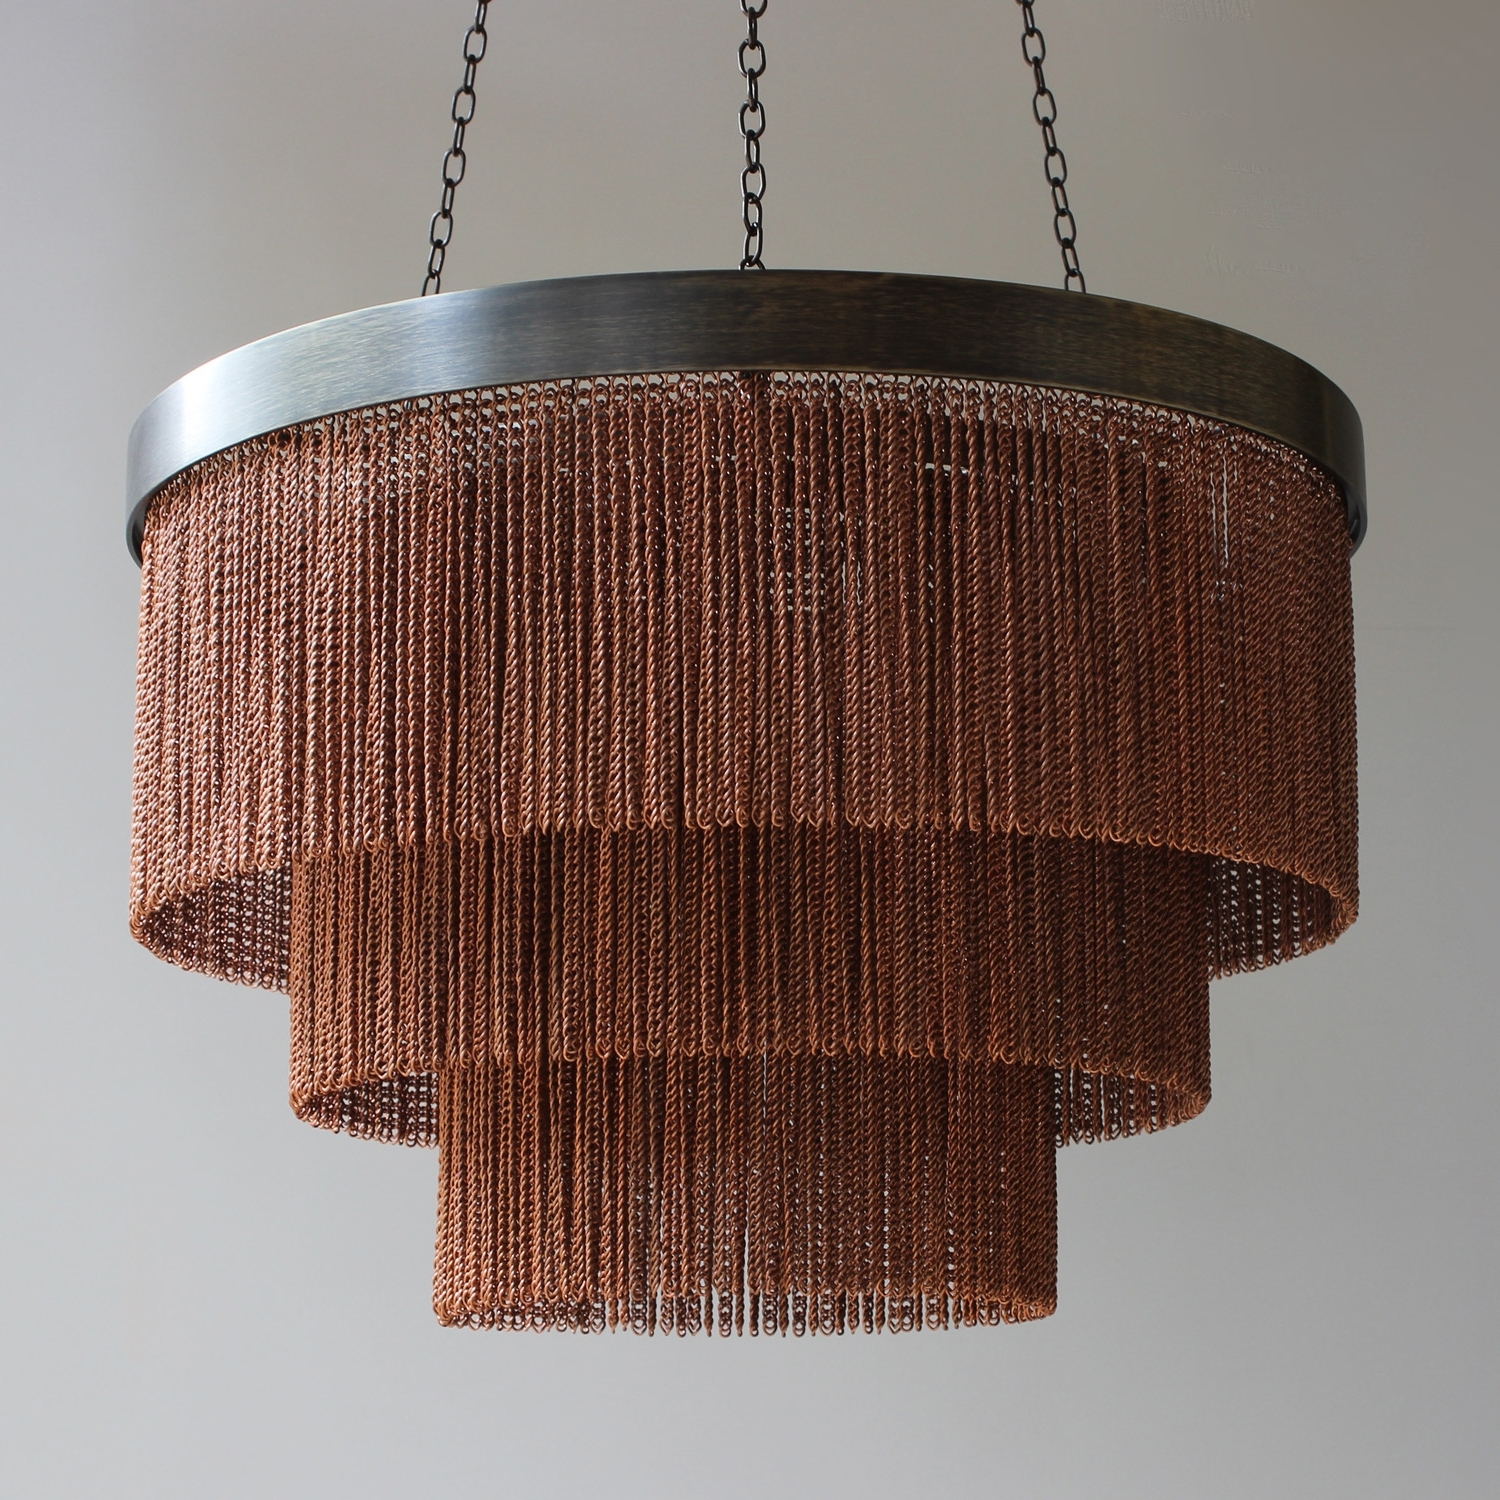 Most Recently Released Copper Chain Shallow Chandelier – Tigermoth Lighting Throughout Copper Chandeliers (View 7 of 15)